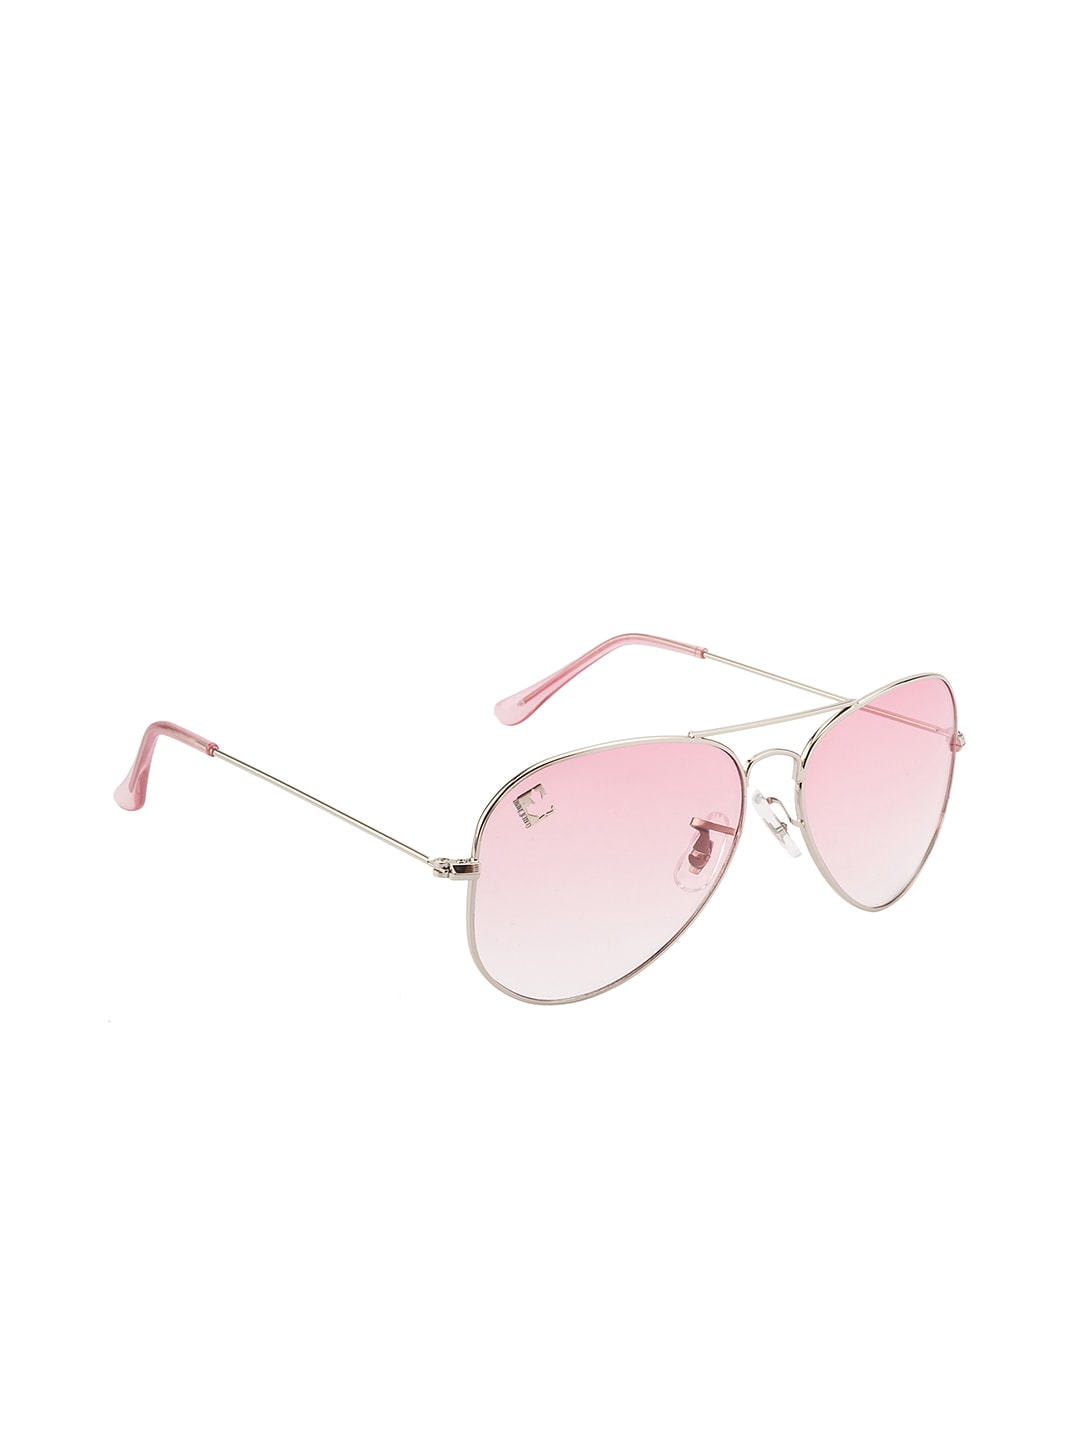 d1b82661abef9 Aviators - Buy Aviator Sunglasses Online in India